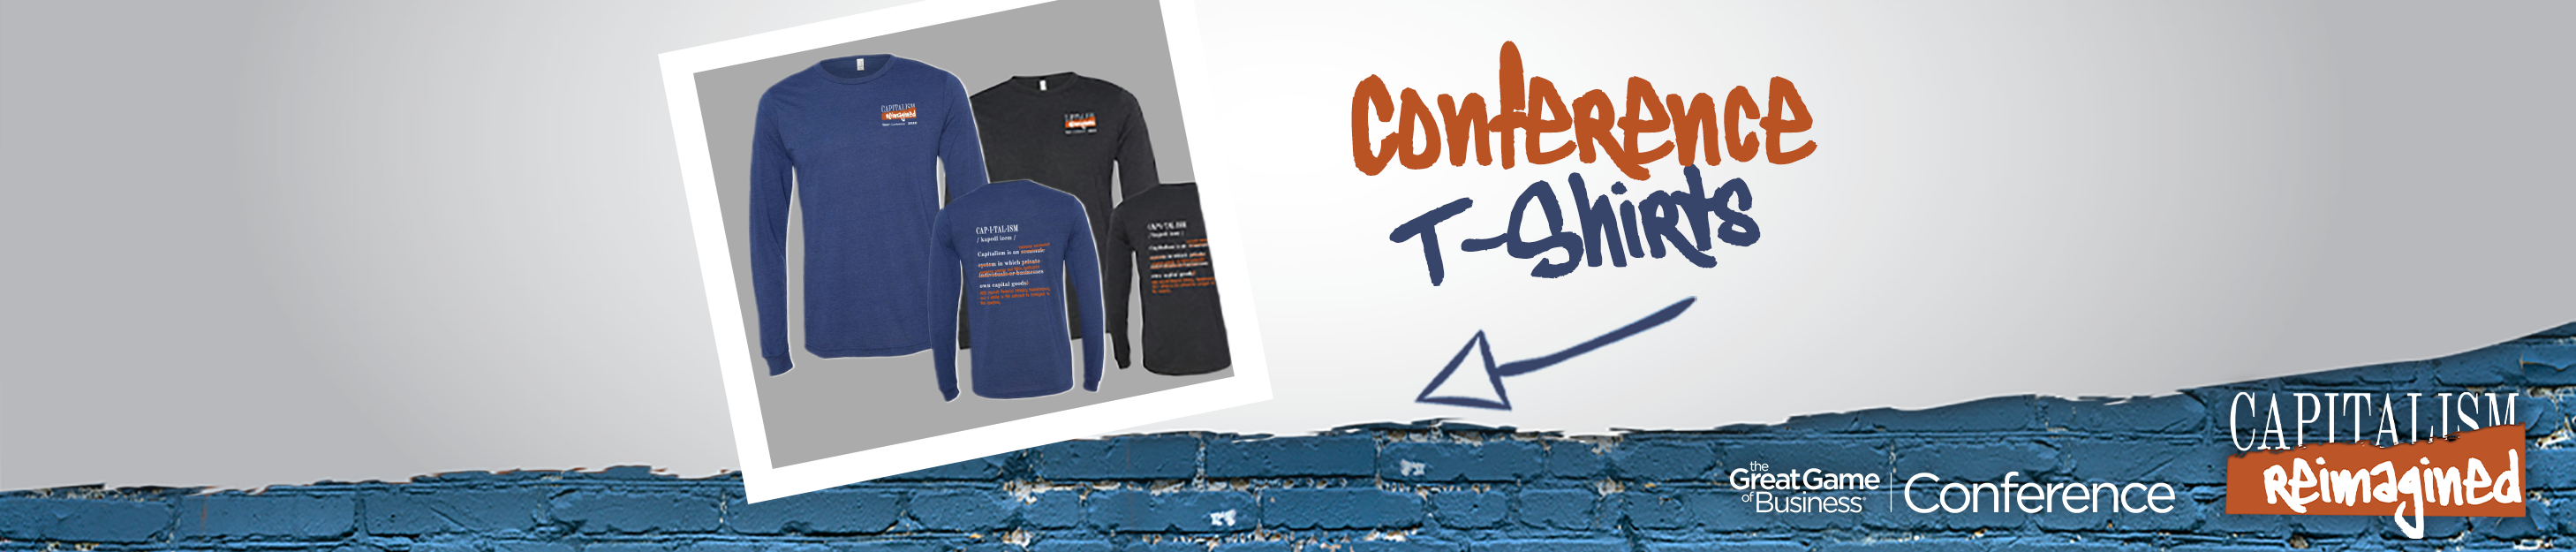 Conference tshirt graphic Landing Page-1